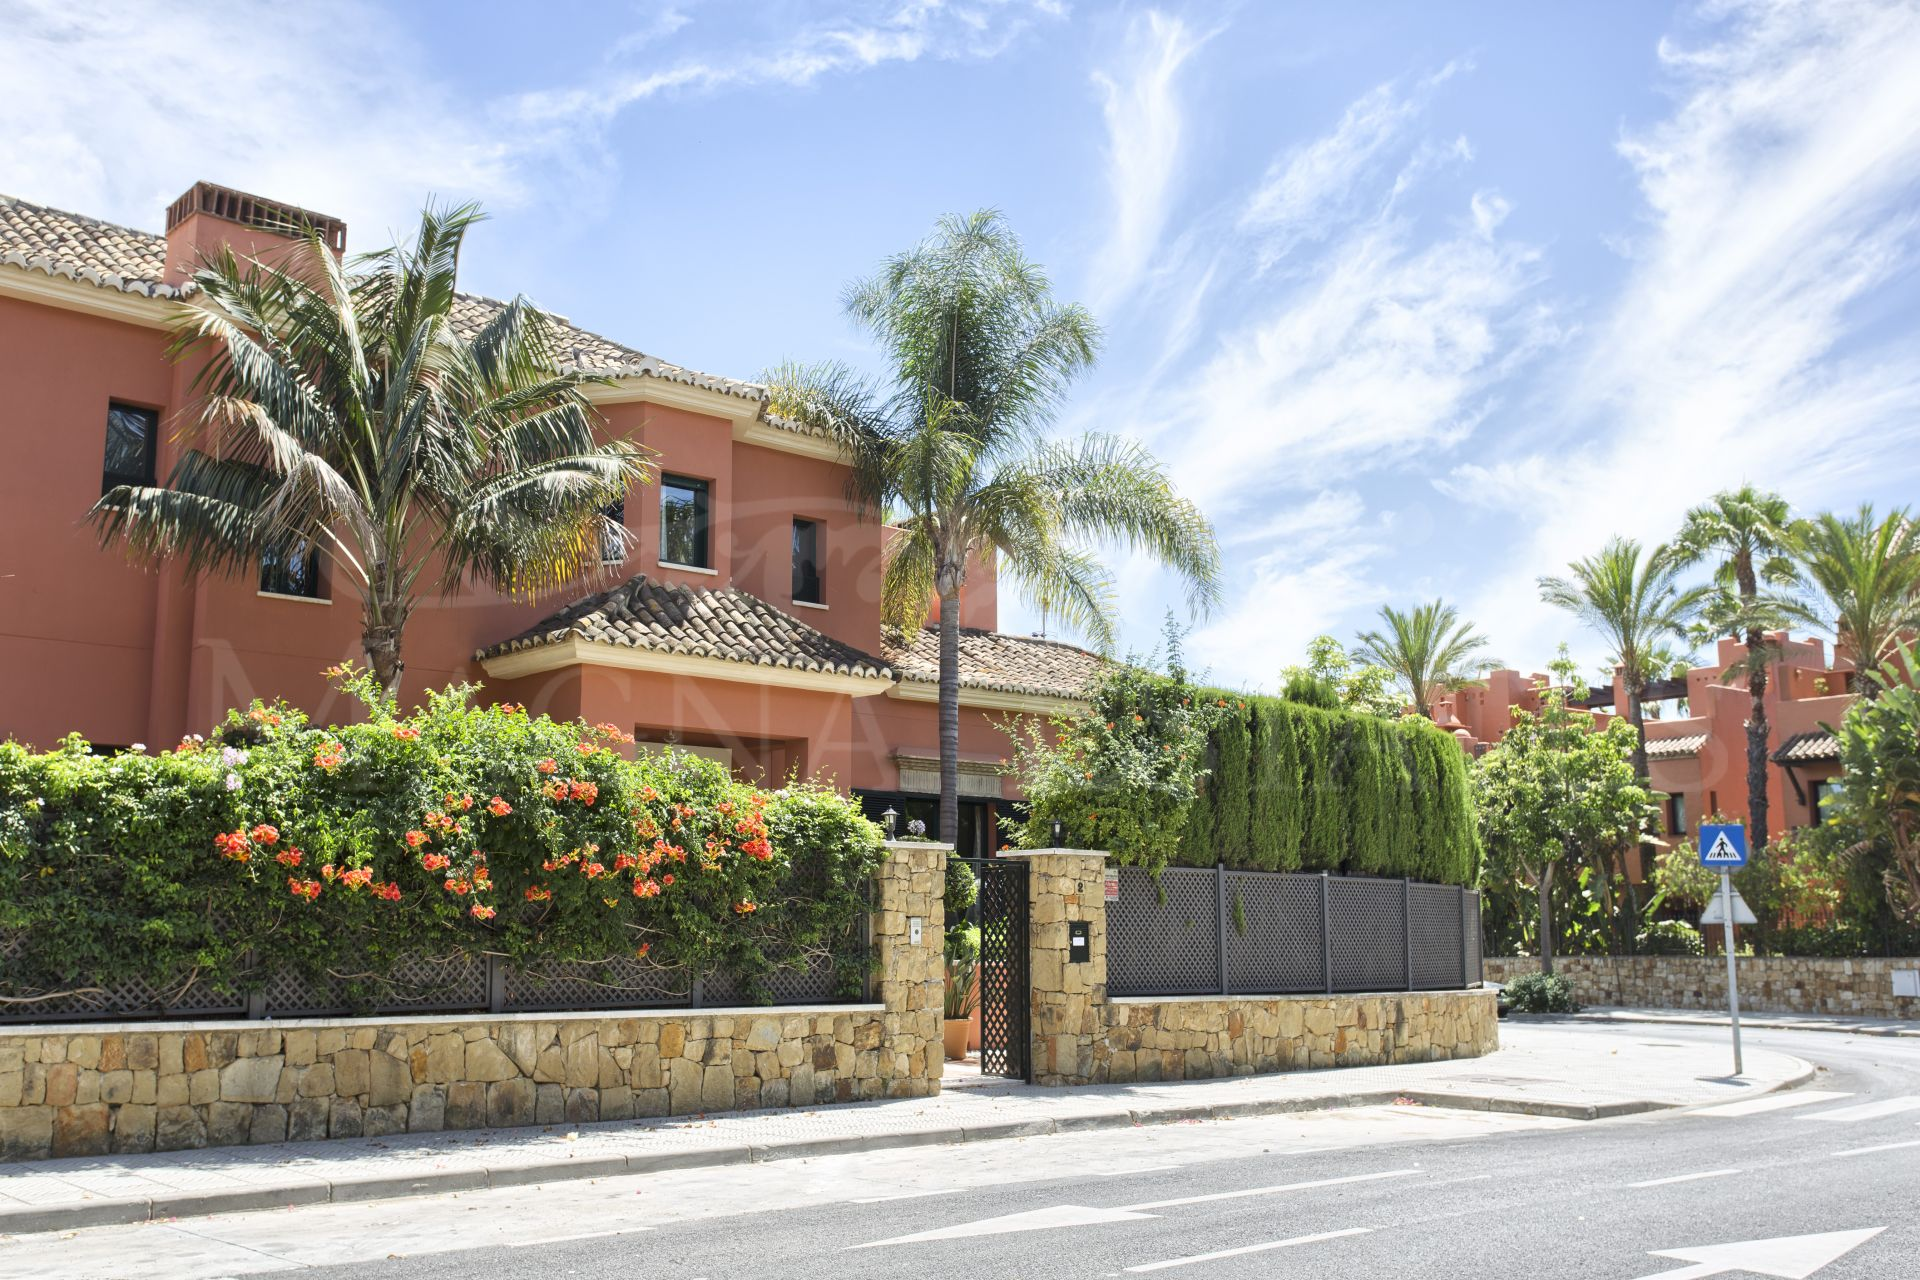 Stately villa in Altos de Puente Romano, on the Golden Mile of Marbella